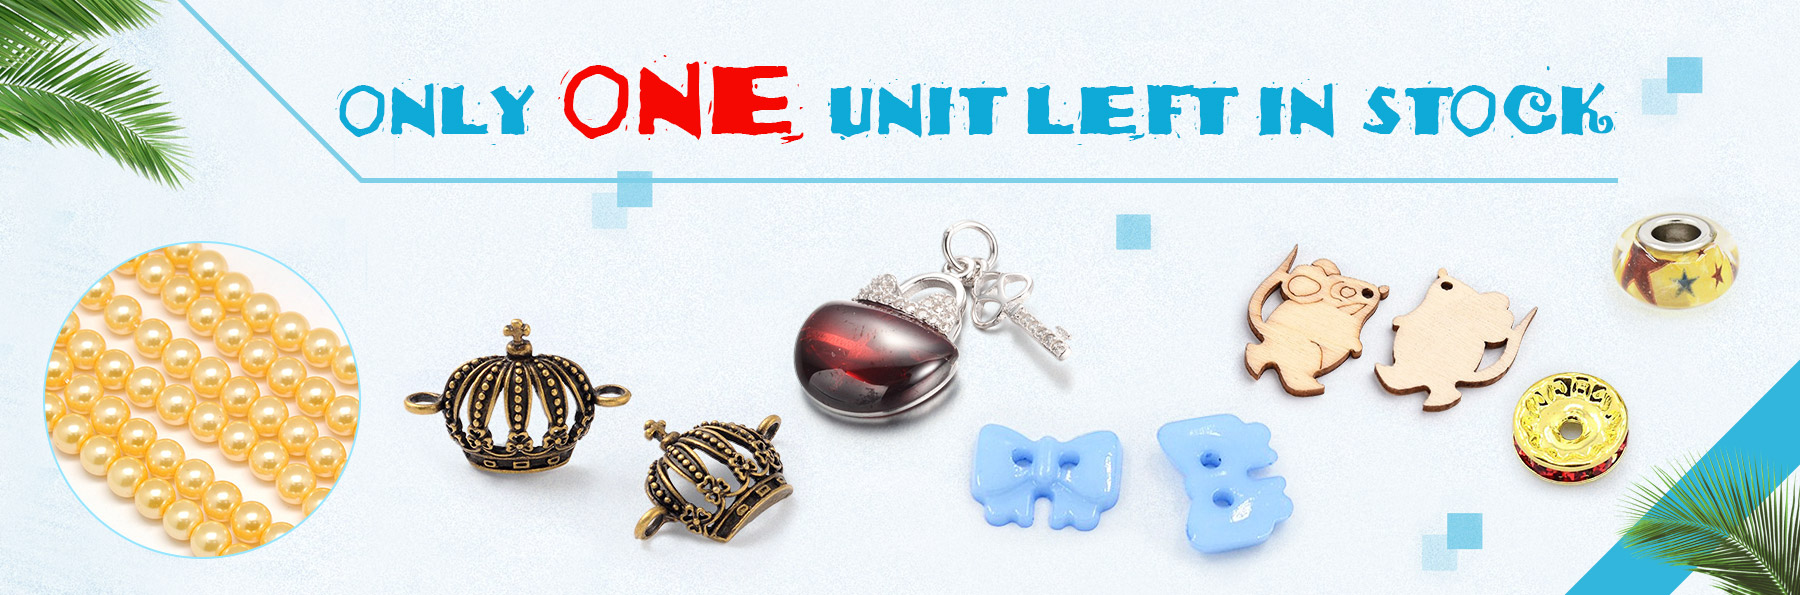 Only One Unit Left In Stock